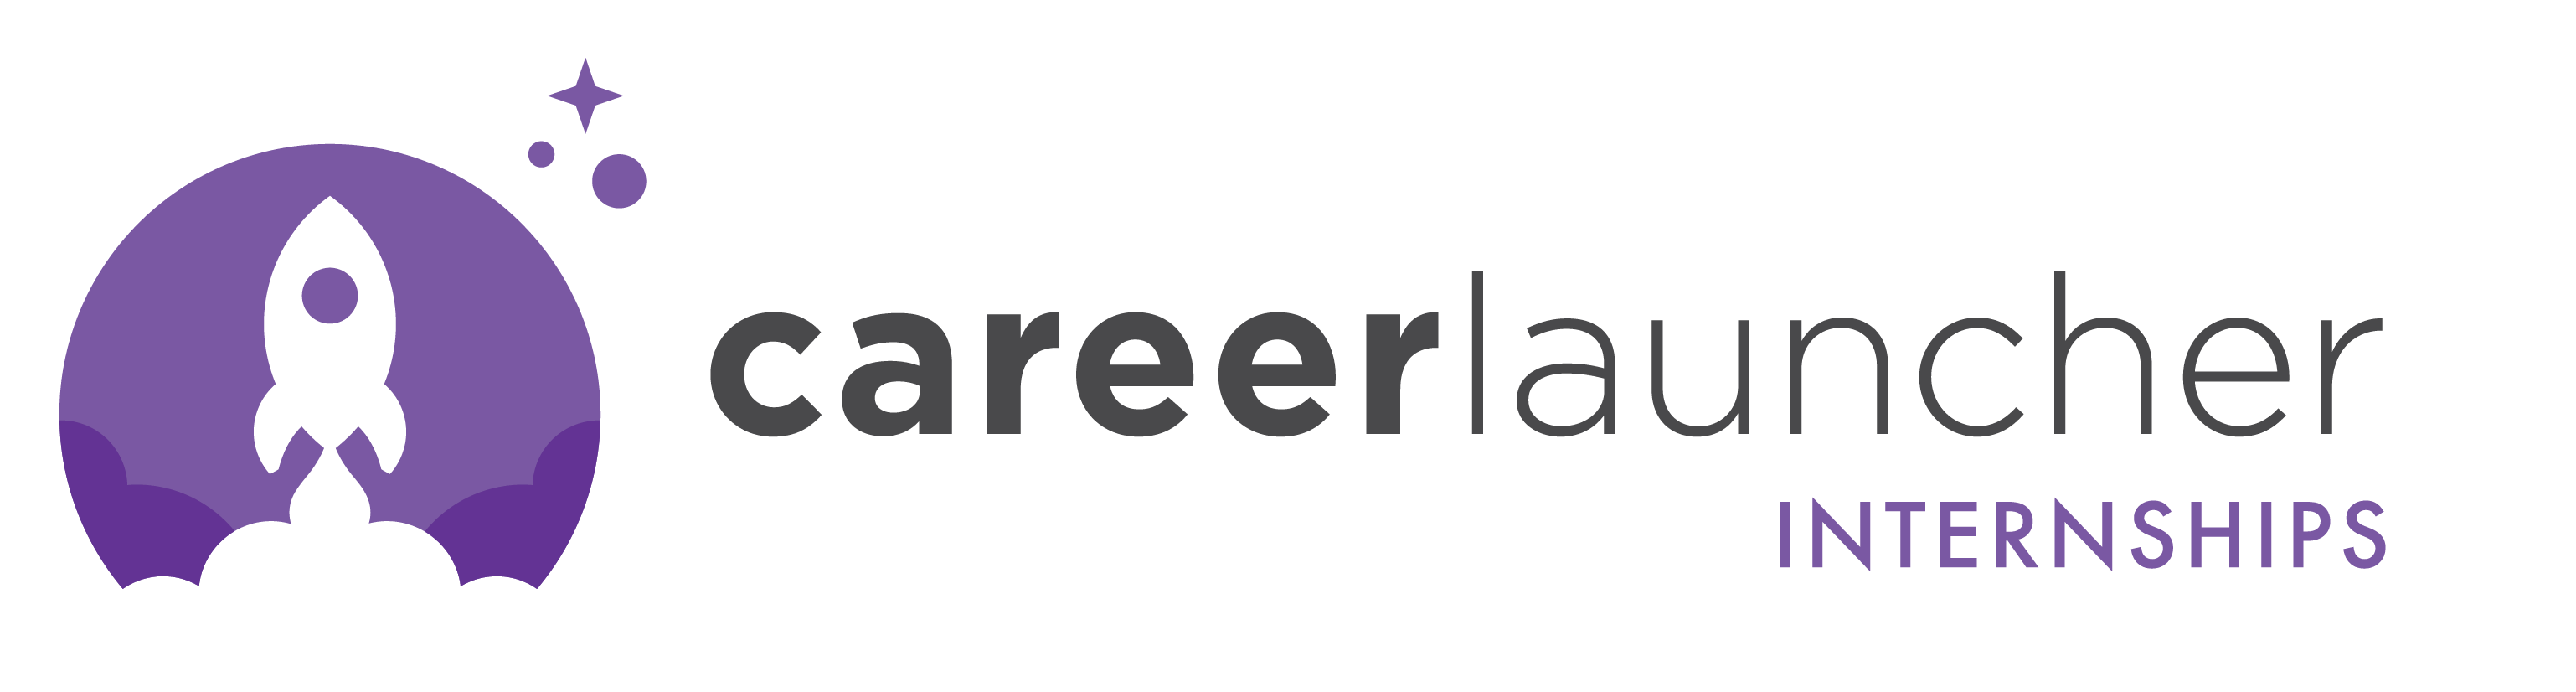 Career Launcher internships